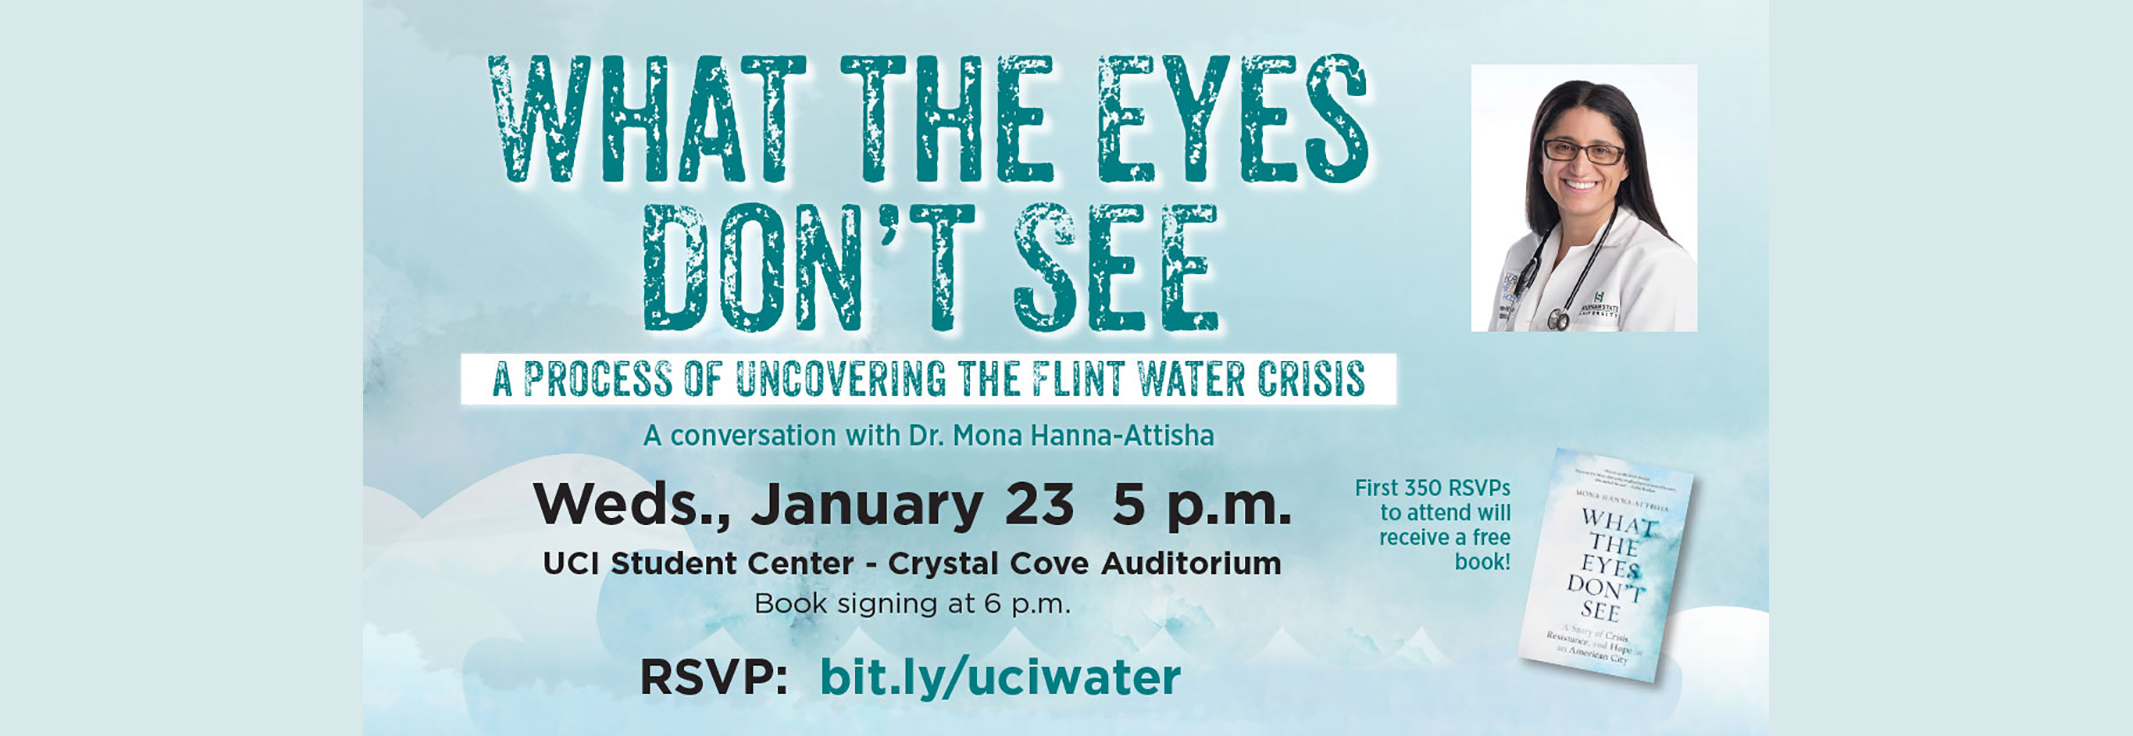 Event poster for What the Eyes Don't See: A Process of Uncovering the Flint Water Crisis - A conversation with Dr.Mona Hanna-Attisha, Wednesday January 23 at 5pm, RSVP at bit.ly/uciwater